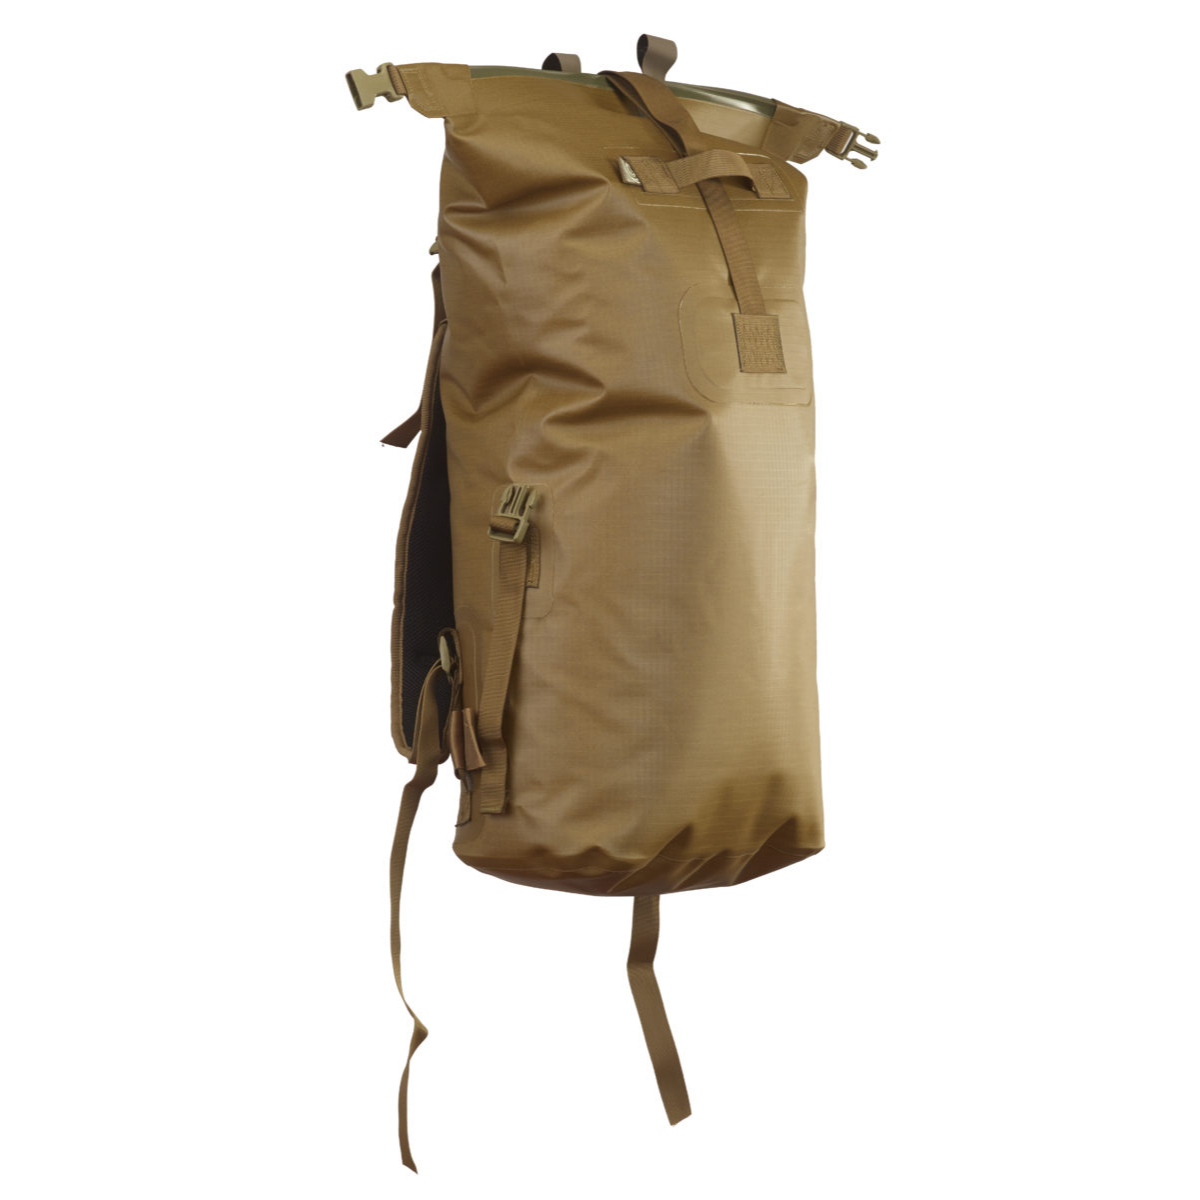 Animas™ – Watershed Drybags 0a4ff4c4941e0